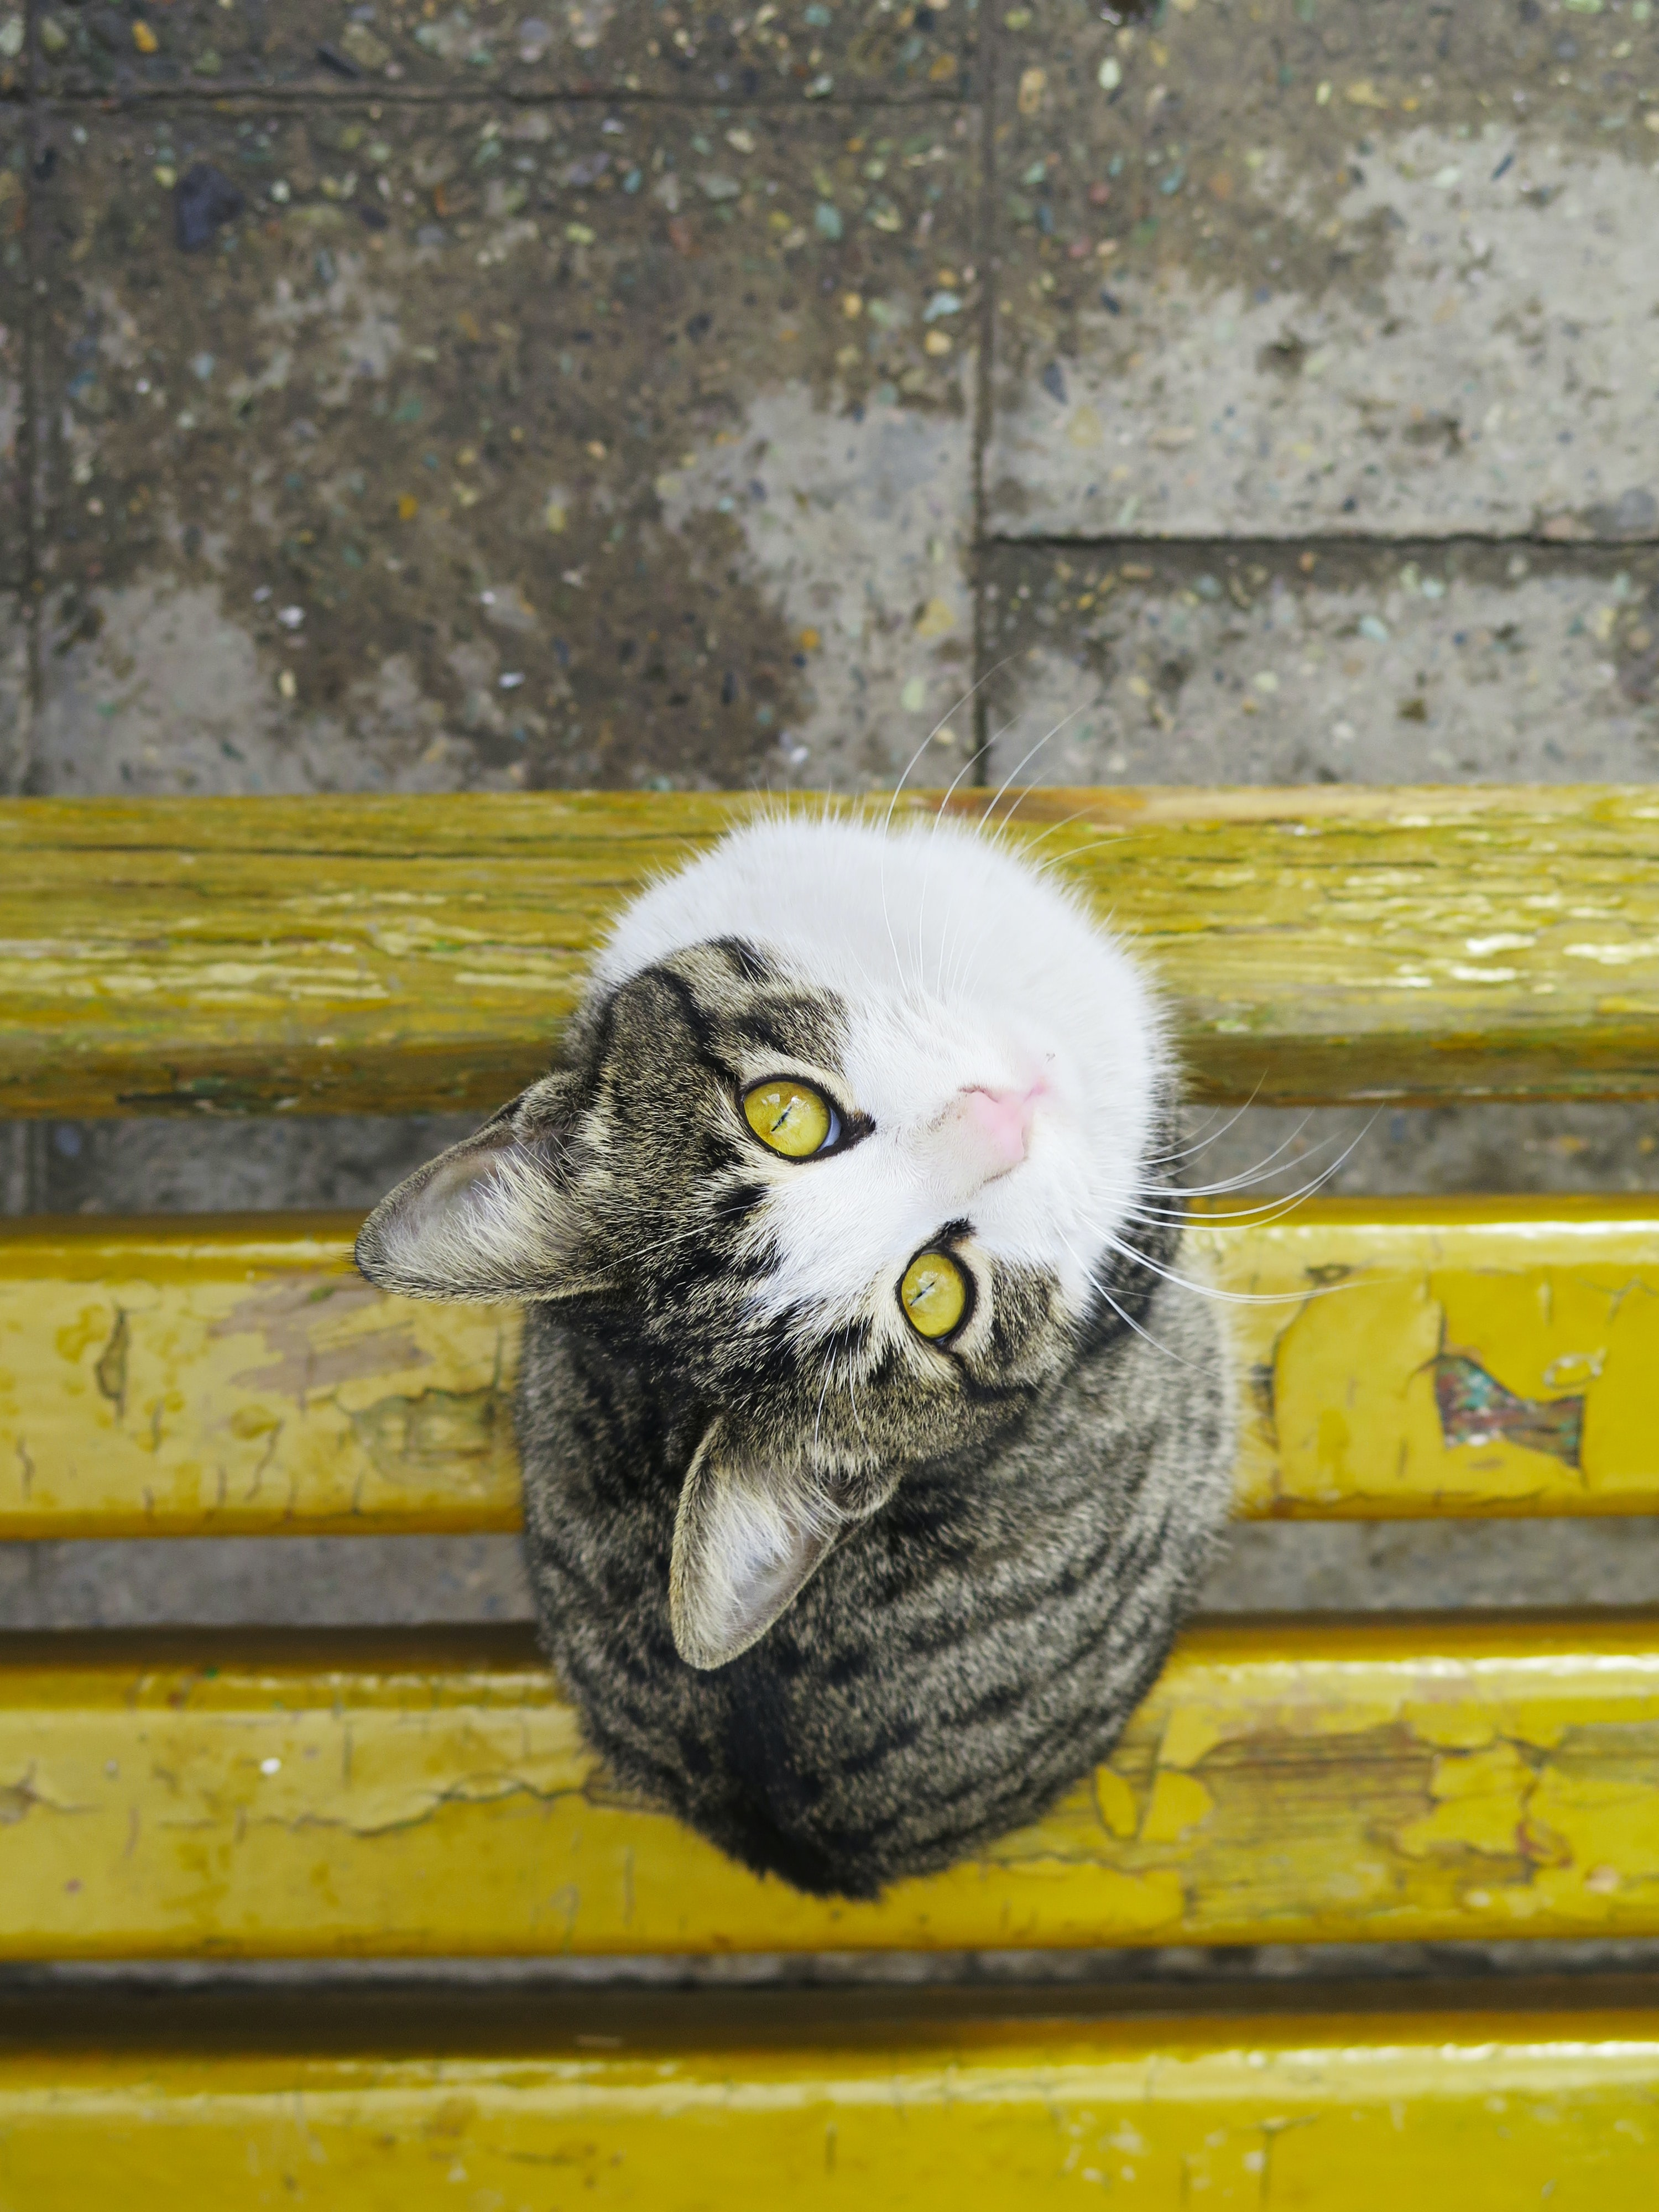 Gray and white cat looks up on a yellow bench